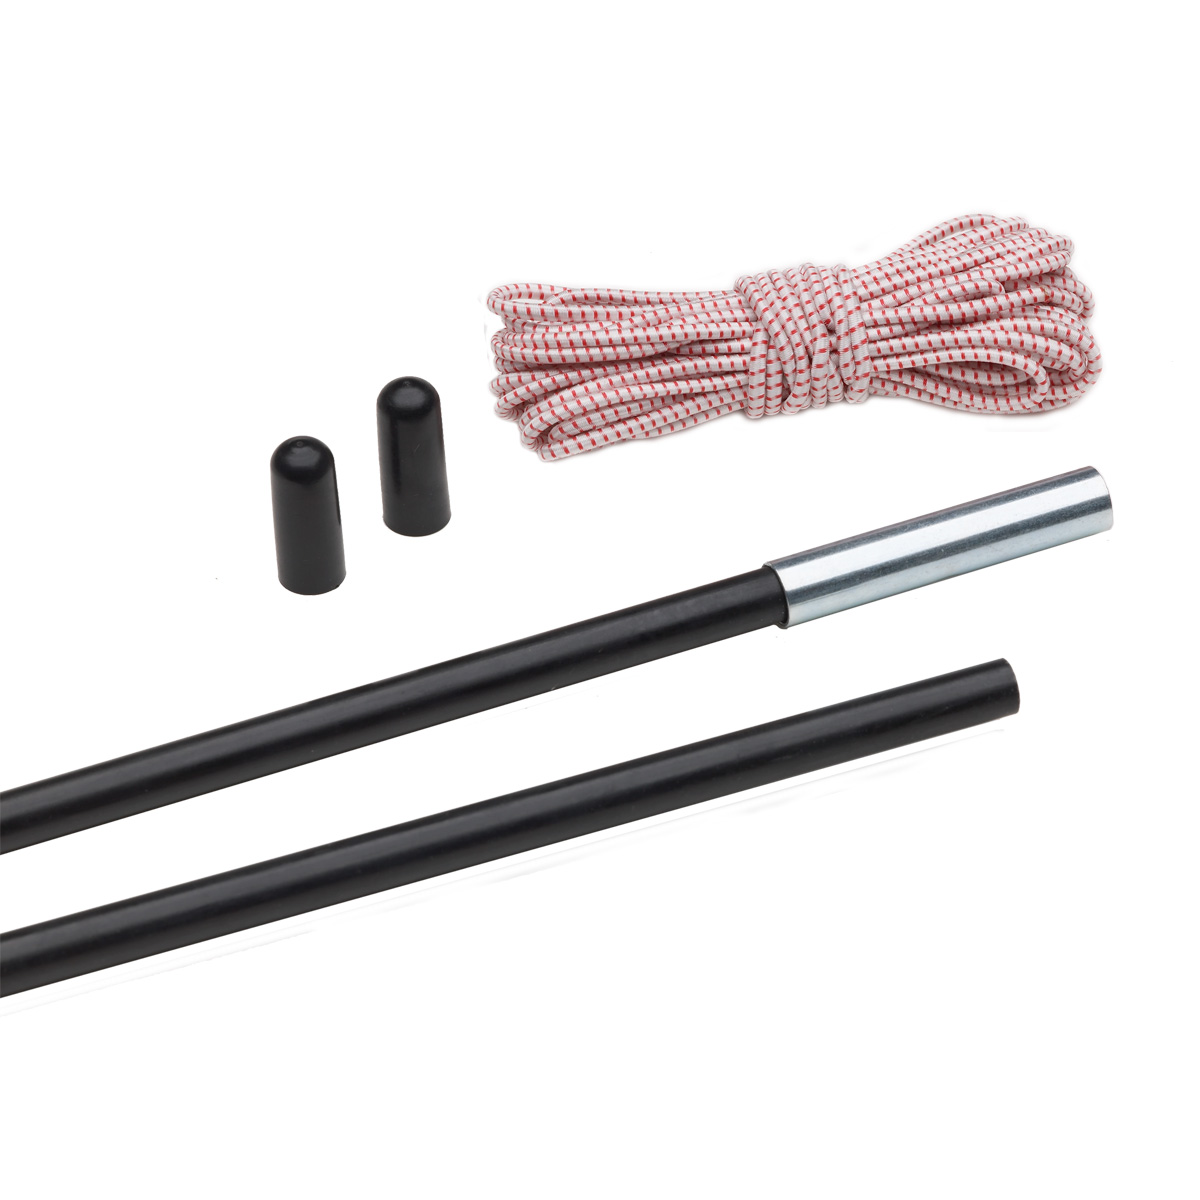 7.9mm Fiberglass Tent Pole Repair/Replacement Kit  sc 1 st  Tents - Johnson Outdoors & 7.9mm Fiberglass Tent Pole Repair/Replacement Kit | Eureka!